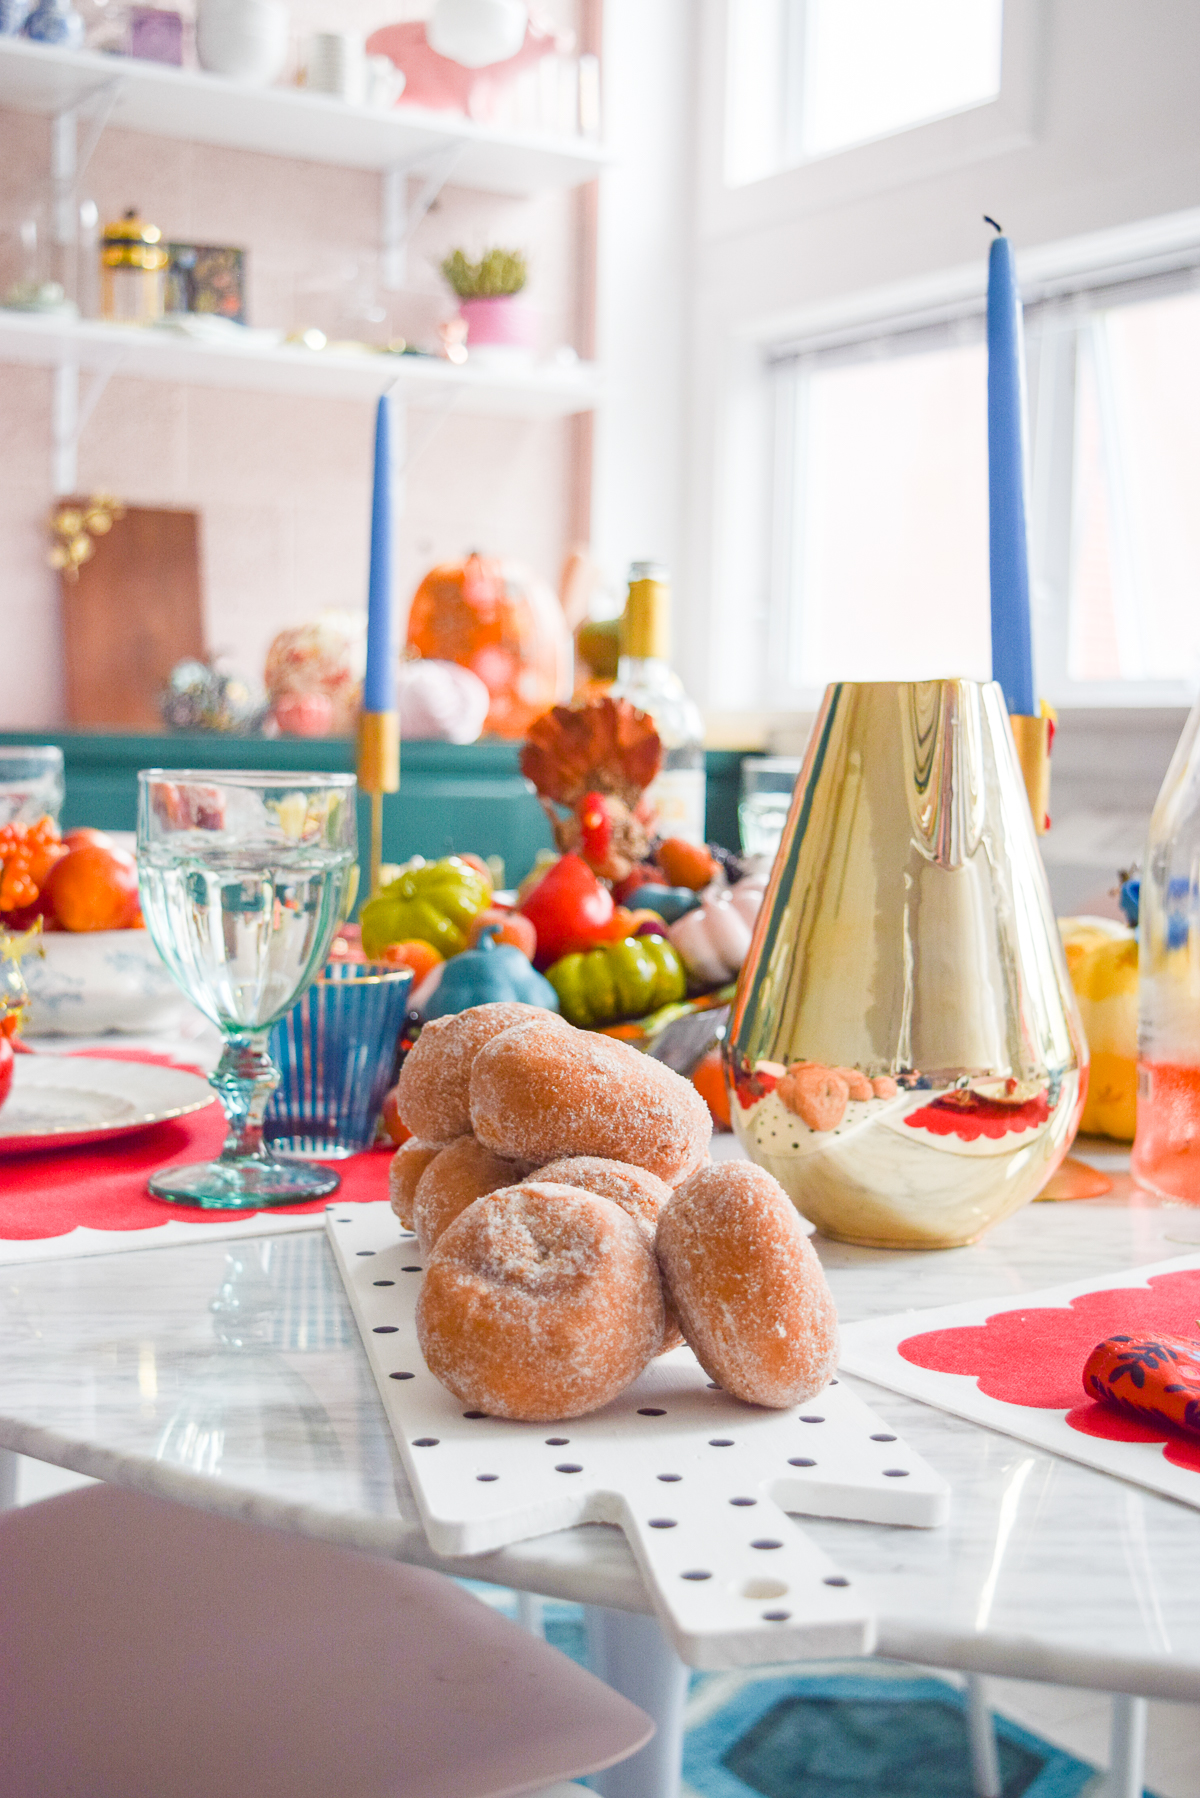 eye level shot of a colourful table setting